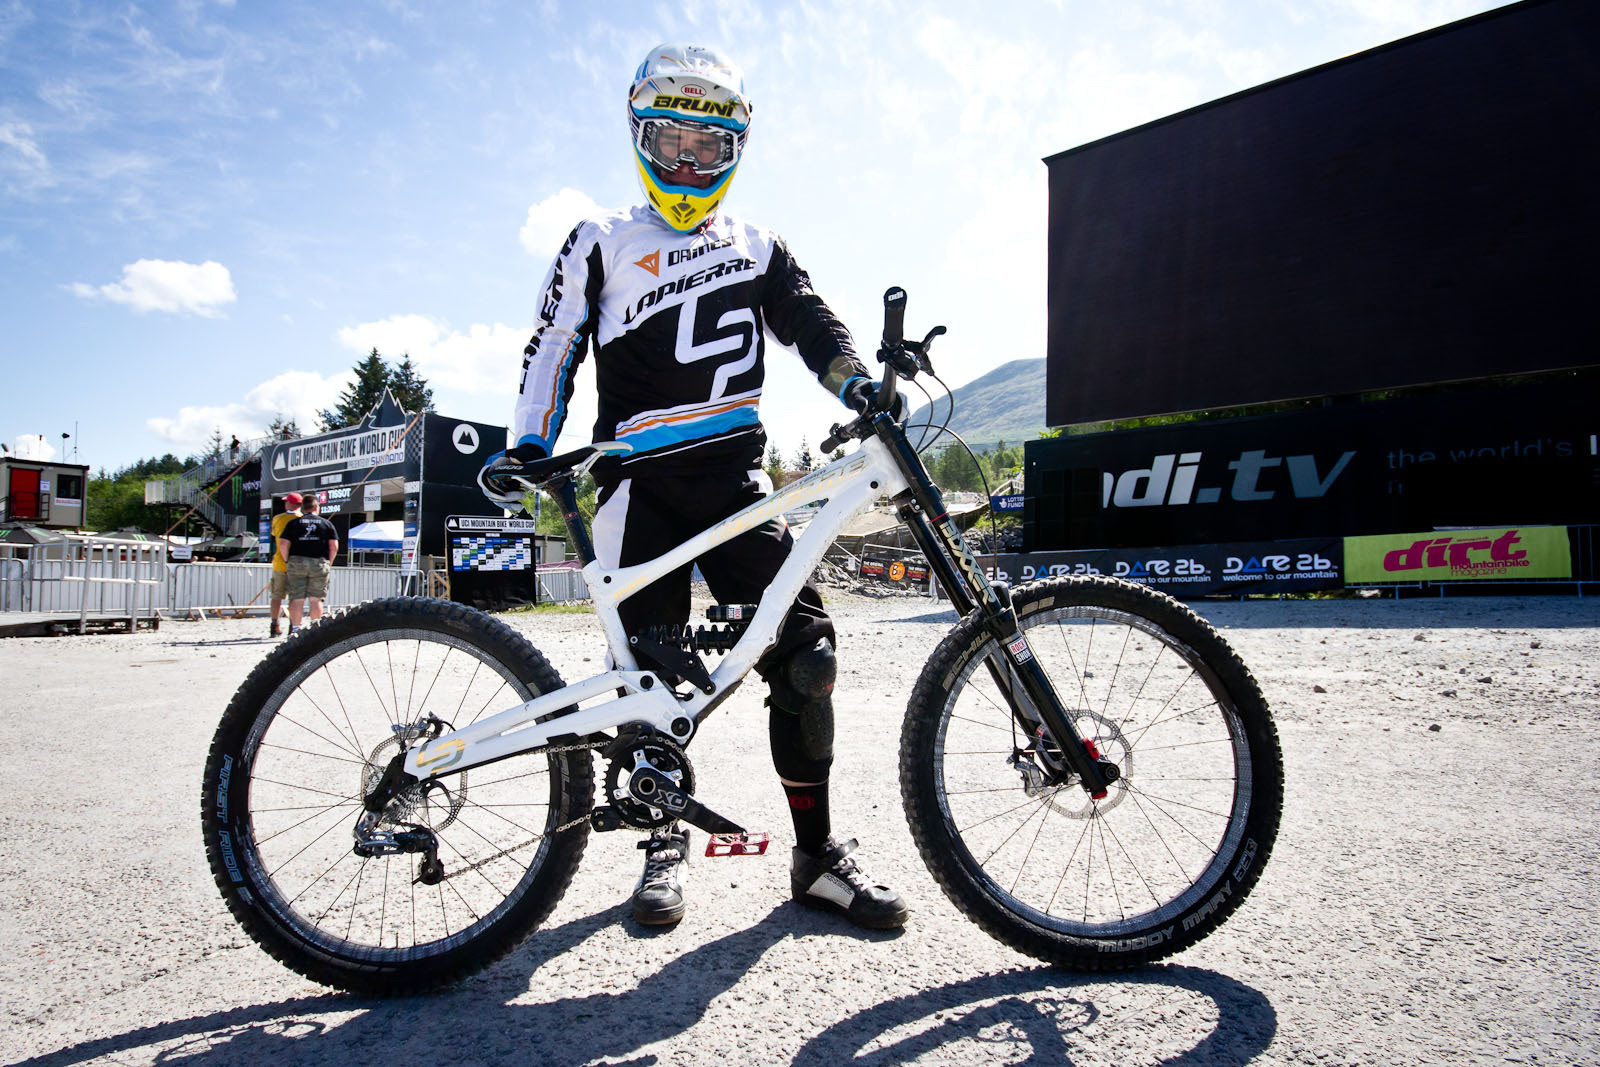 Loic Bruni's Lapierre DH V2 - 24 Pro DH BIkes from Fort William World Cup - Mountain Biking Pictures - Vital MTB